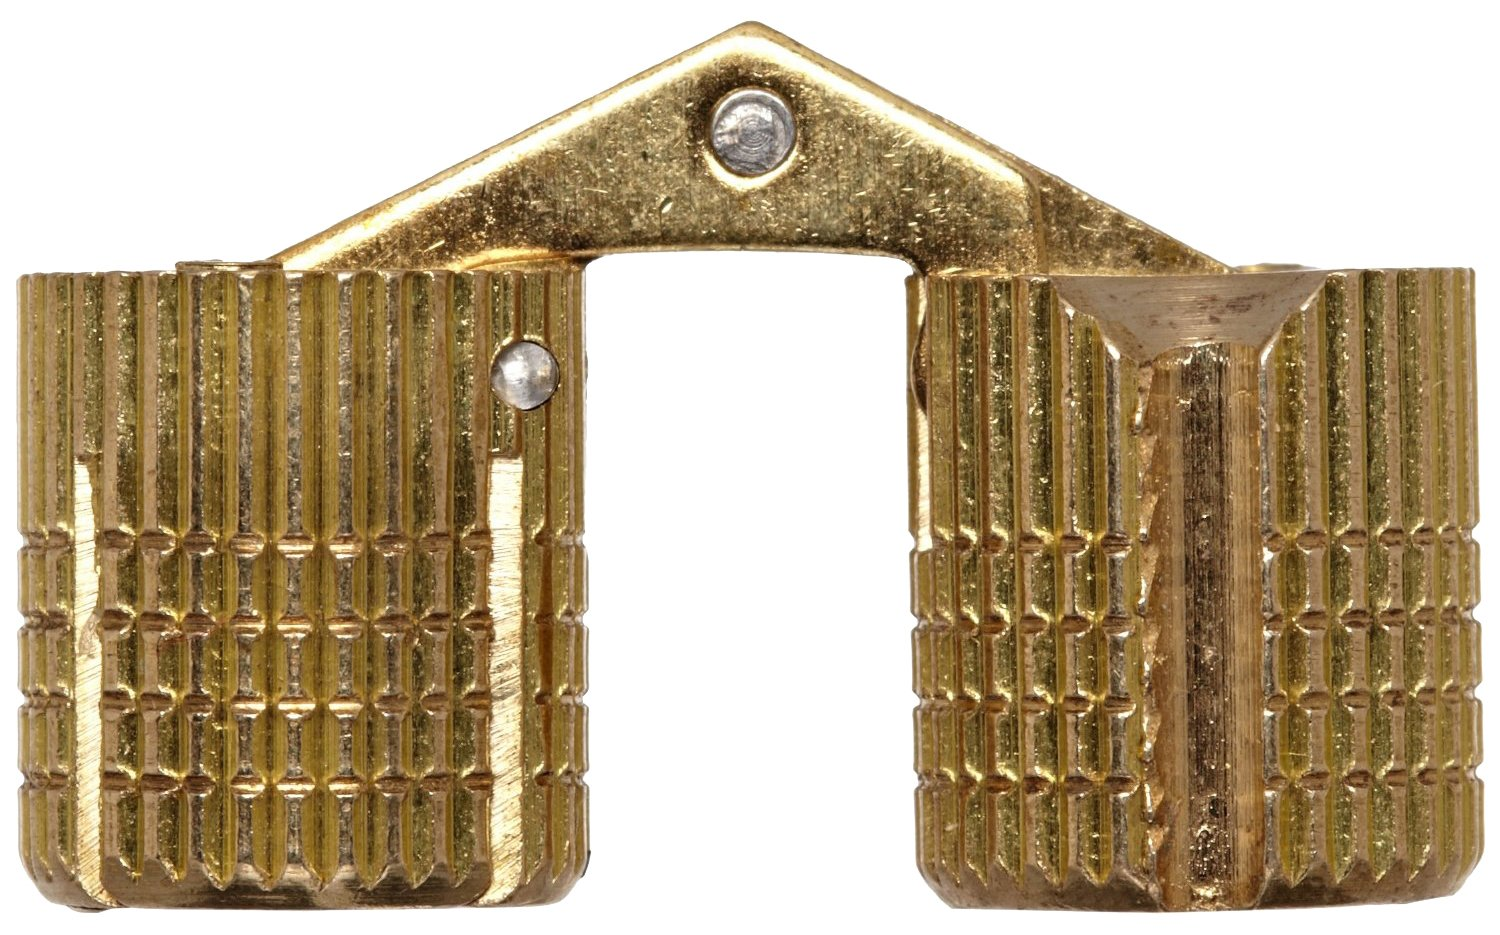 13.5mm Mortise Depth Pack of 24 5//8 Door Thickness Solid Brass Satin Brass Finish SOSS Mortise Mount Invisible Barrel Hinge 12mm Diameter